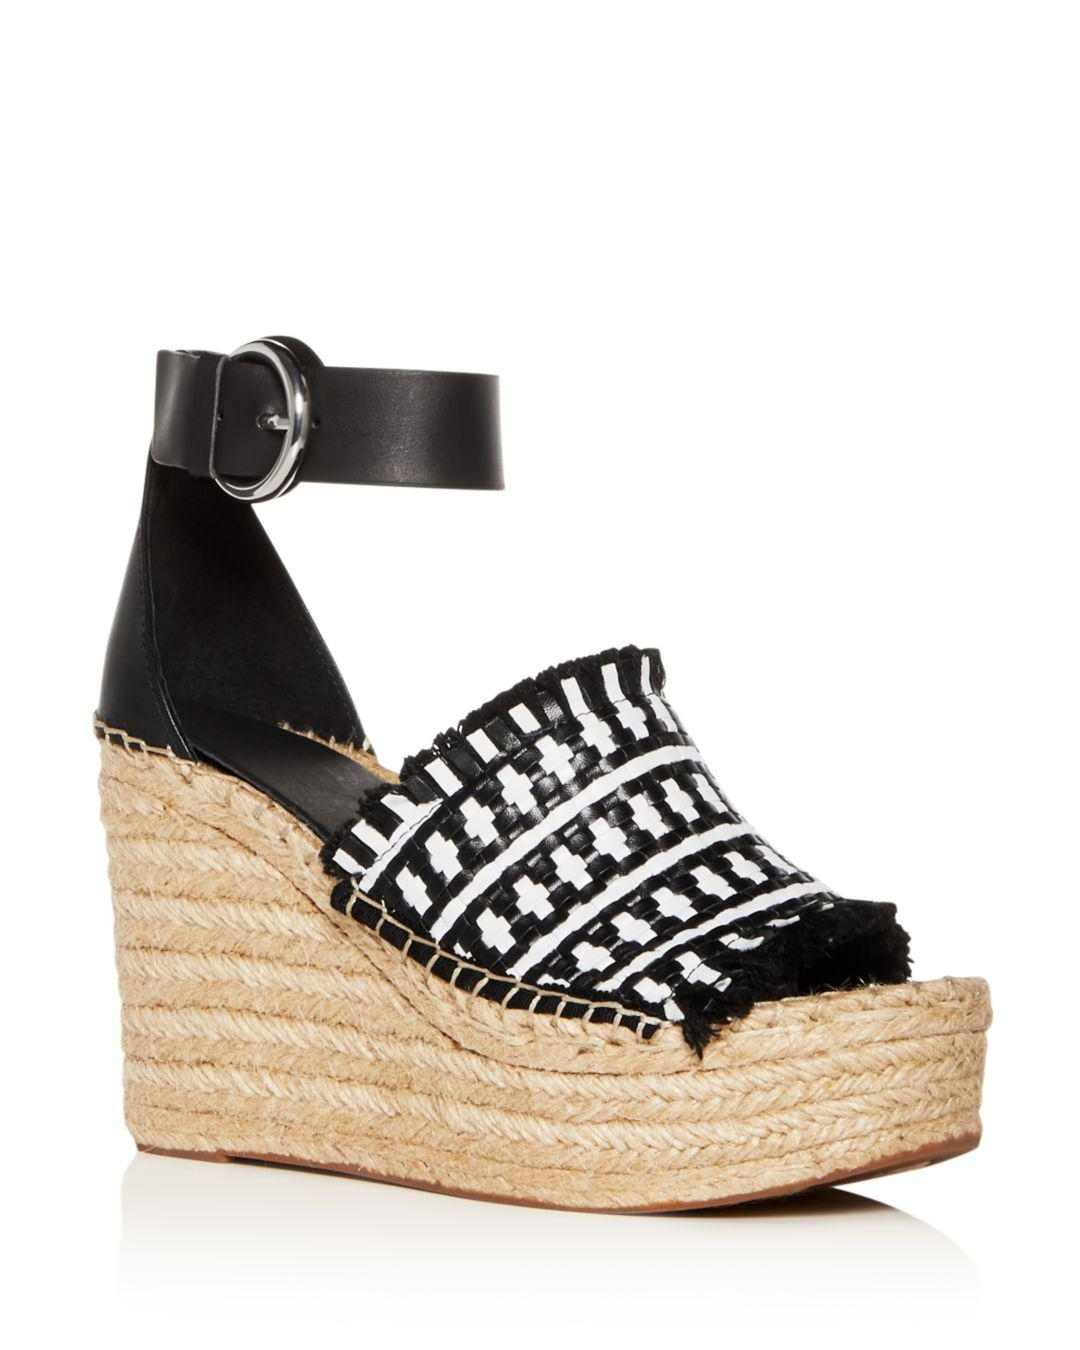 c4ab02480d0 Marc Fisher Women s Andrew Woven Leather High-heel Platform ...